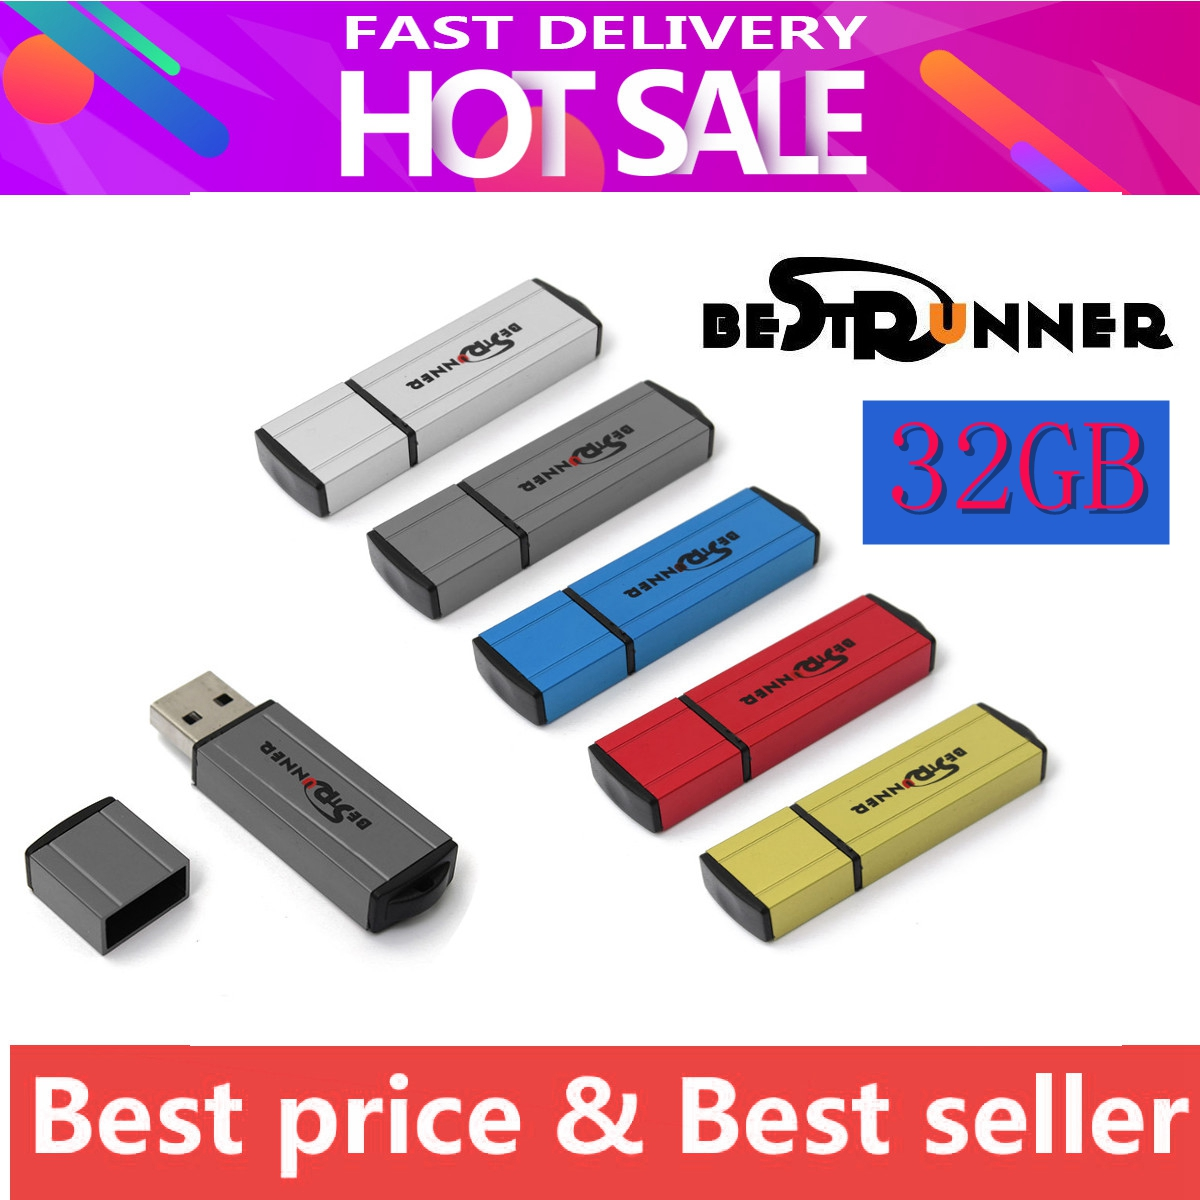 BESTRUNNER 32GB Square Shaped USB 2.0 Flash Drive Stick Memory Thumb Pen Storage U-Disk Multi Color